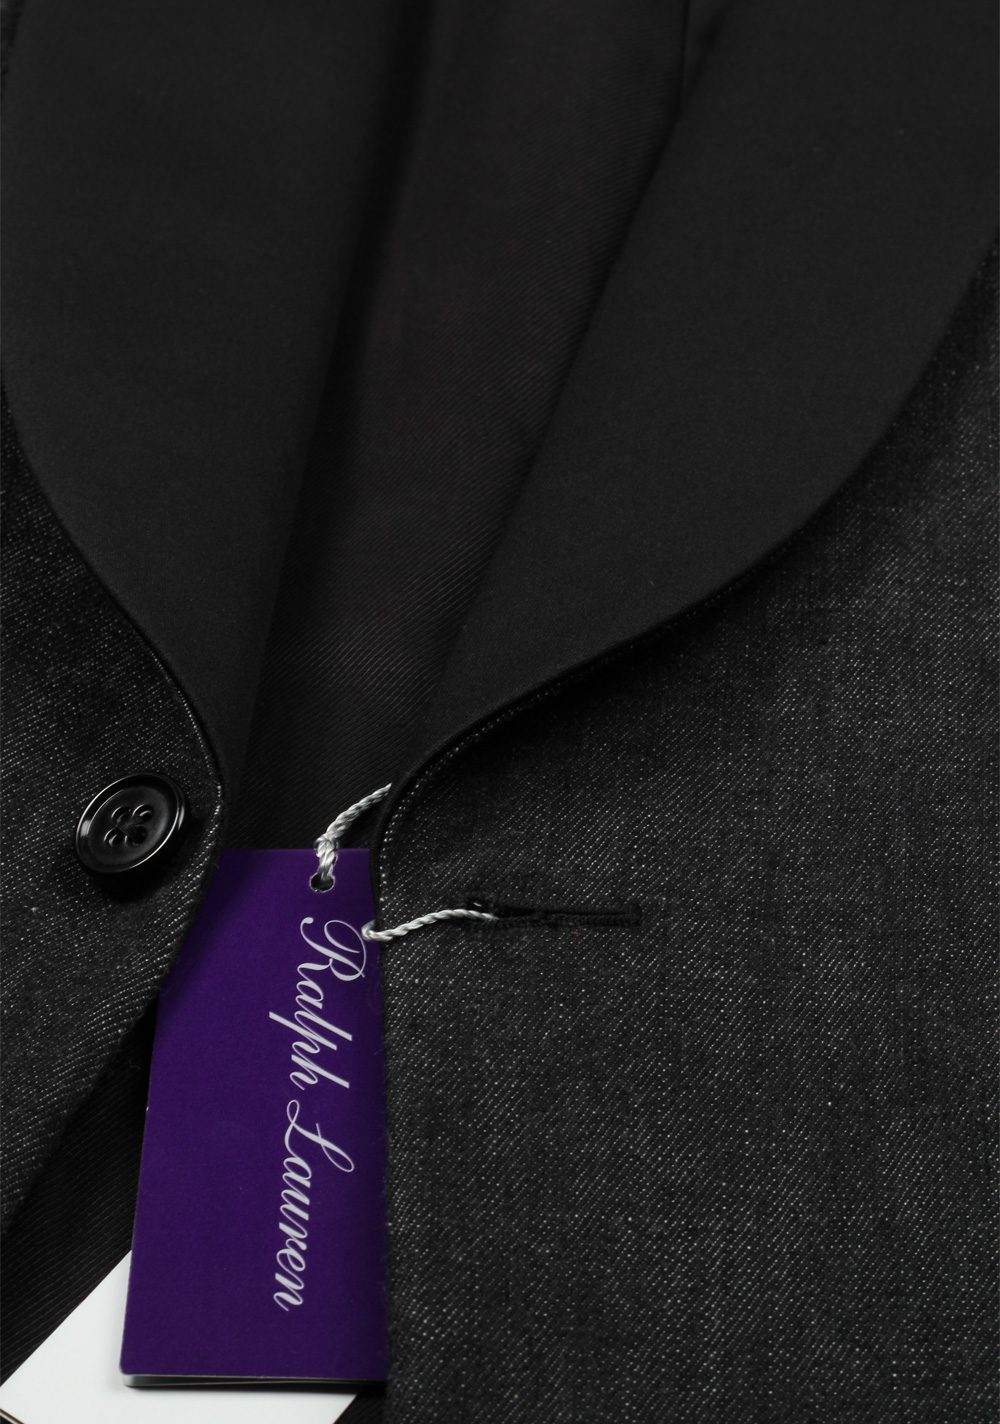 Ralph Lauren Purple Label Black Dinner Jacket Sport Coat Size 52 / 42R U.S. | Costume Limité